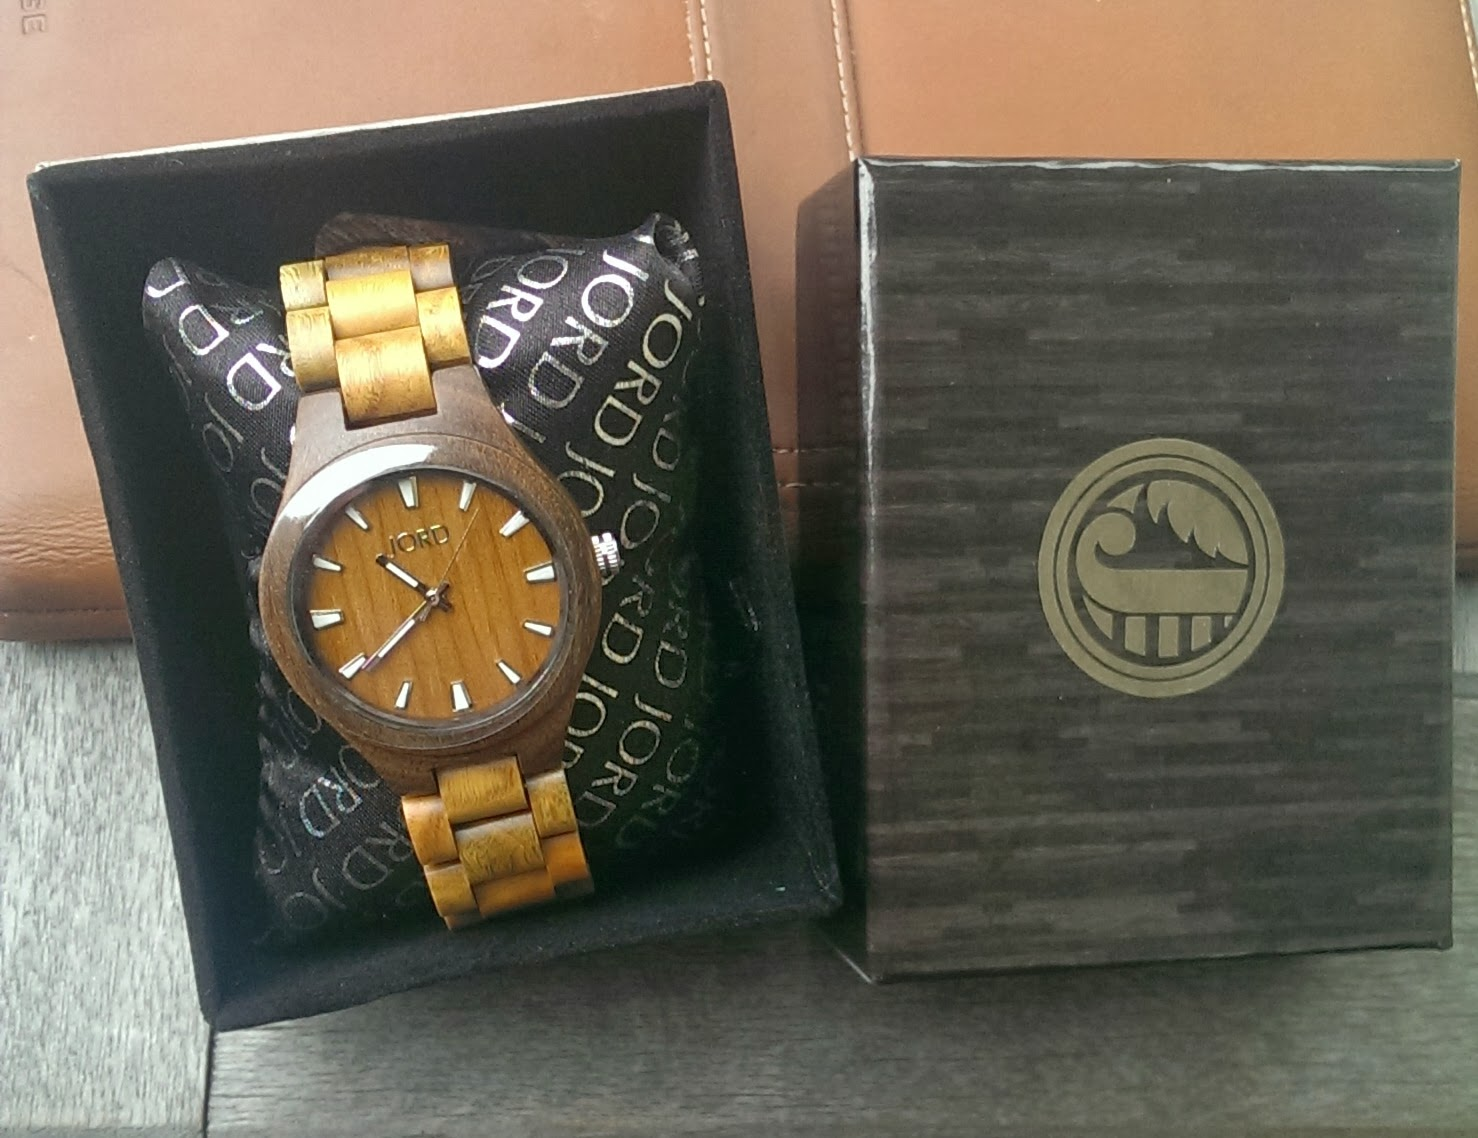 JORD wooden watches